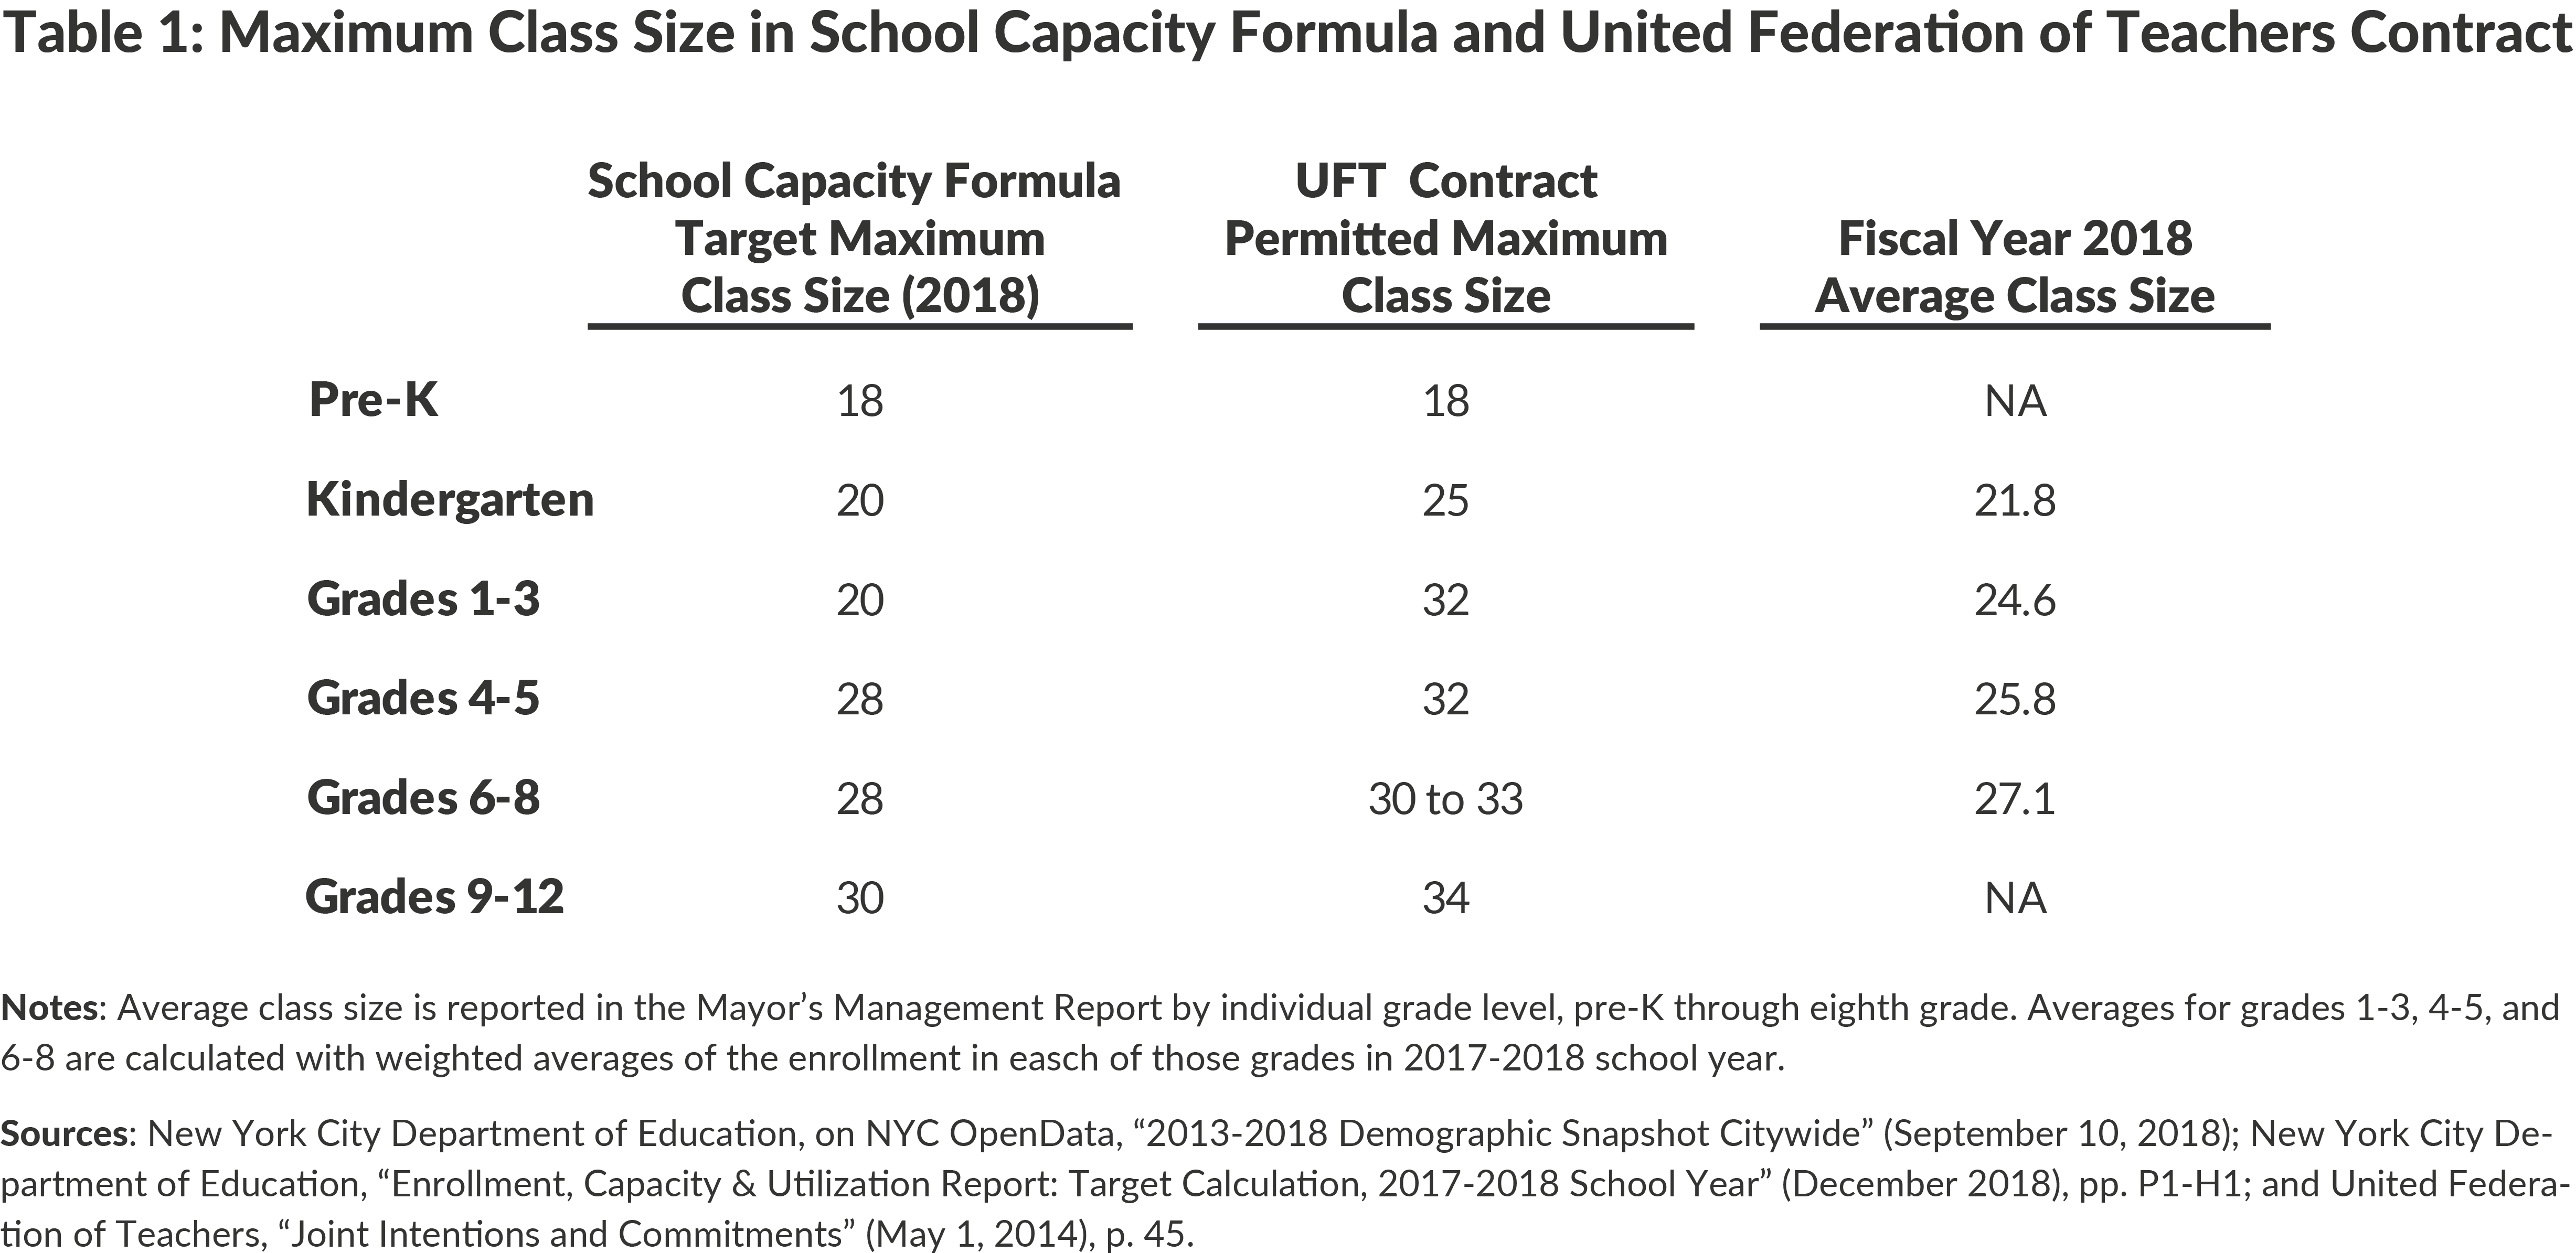 Table 1: Maximum Class Size in School Capacity Formula and United Federation of Teachers Contract